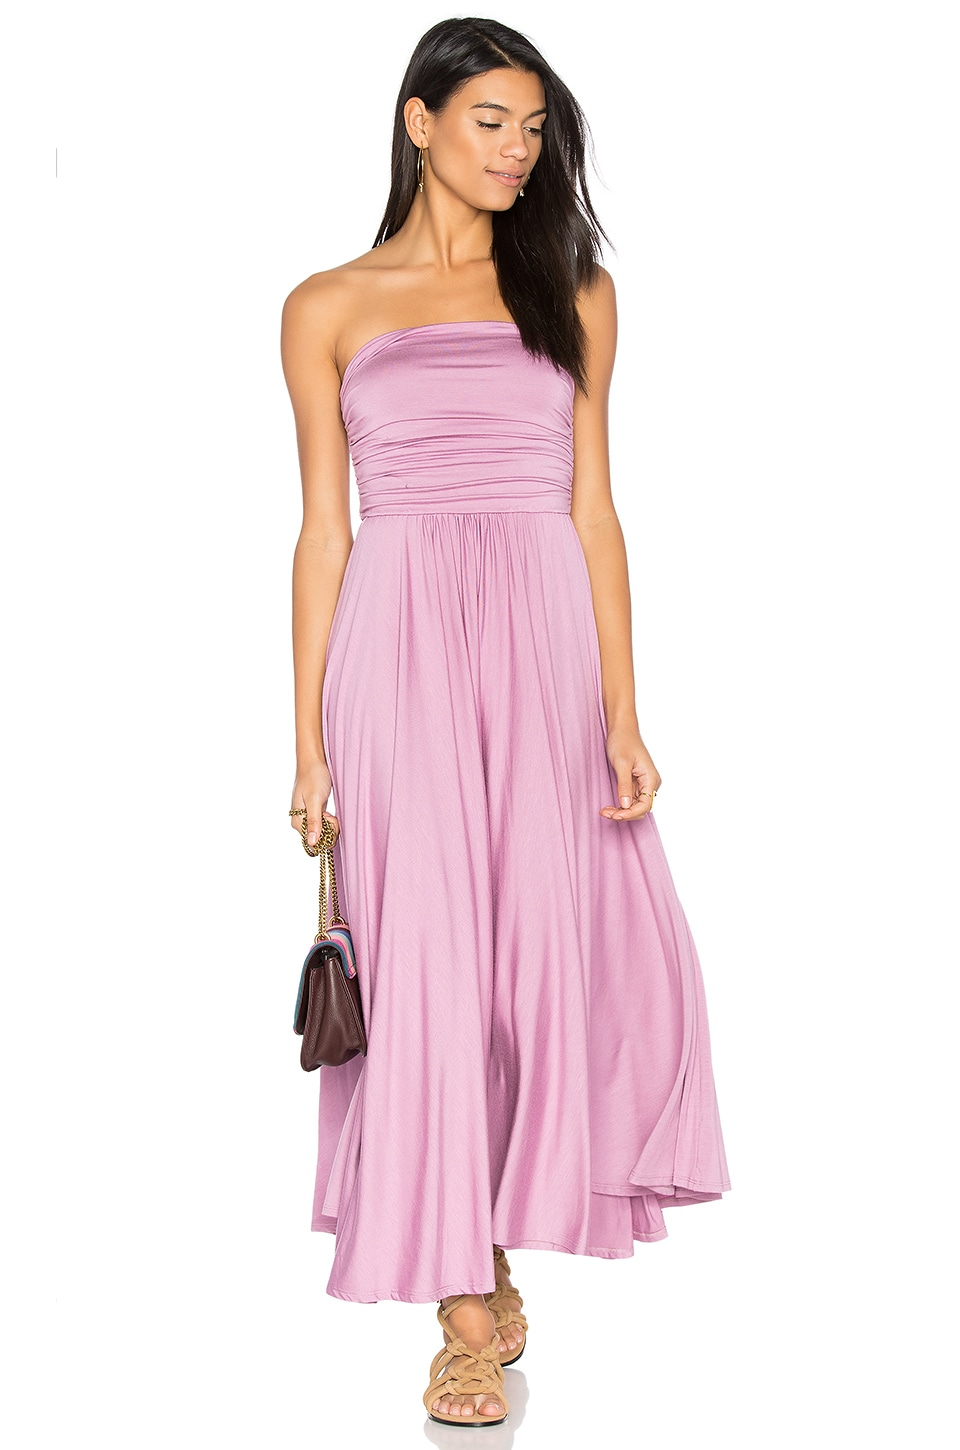 Rachel Pally Eme Dress in Violeta